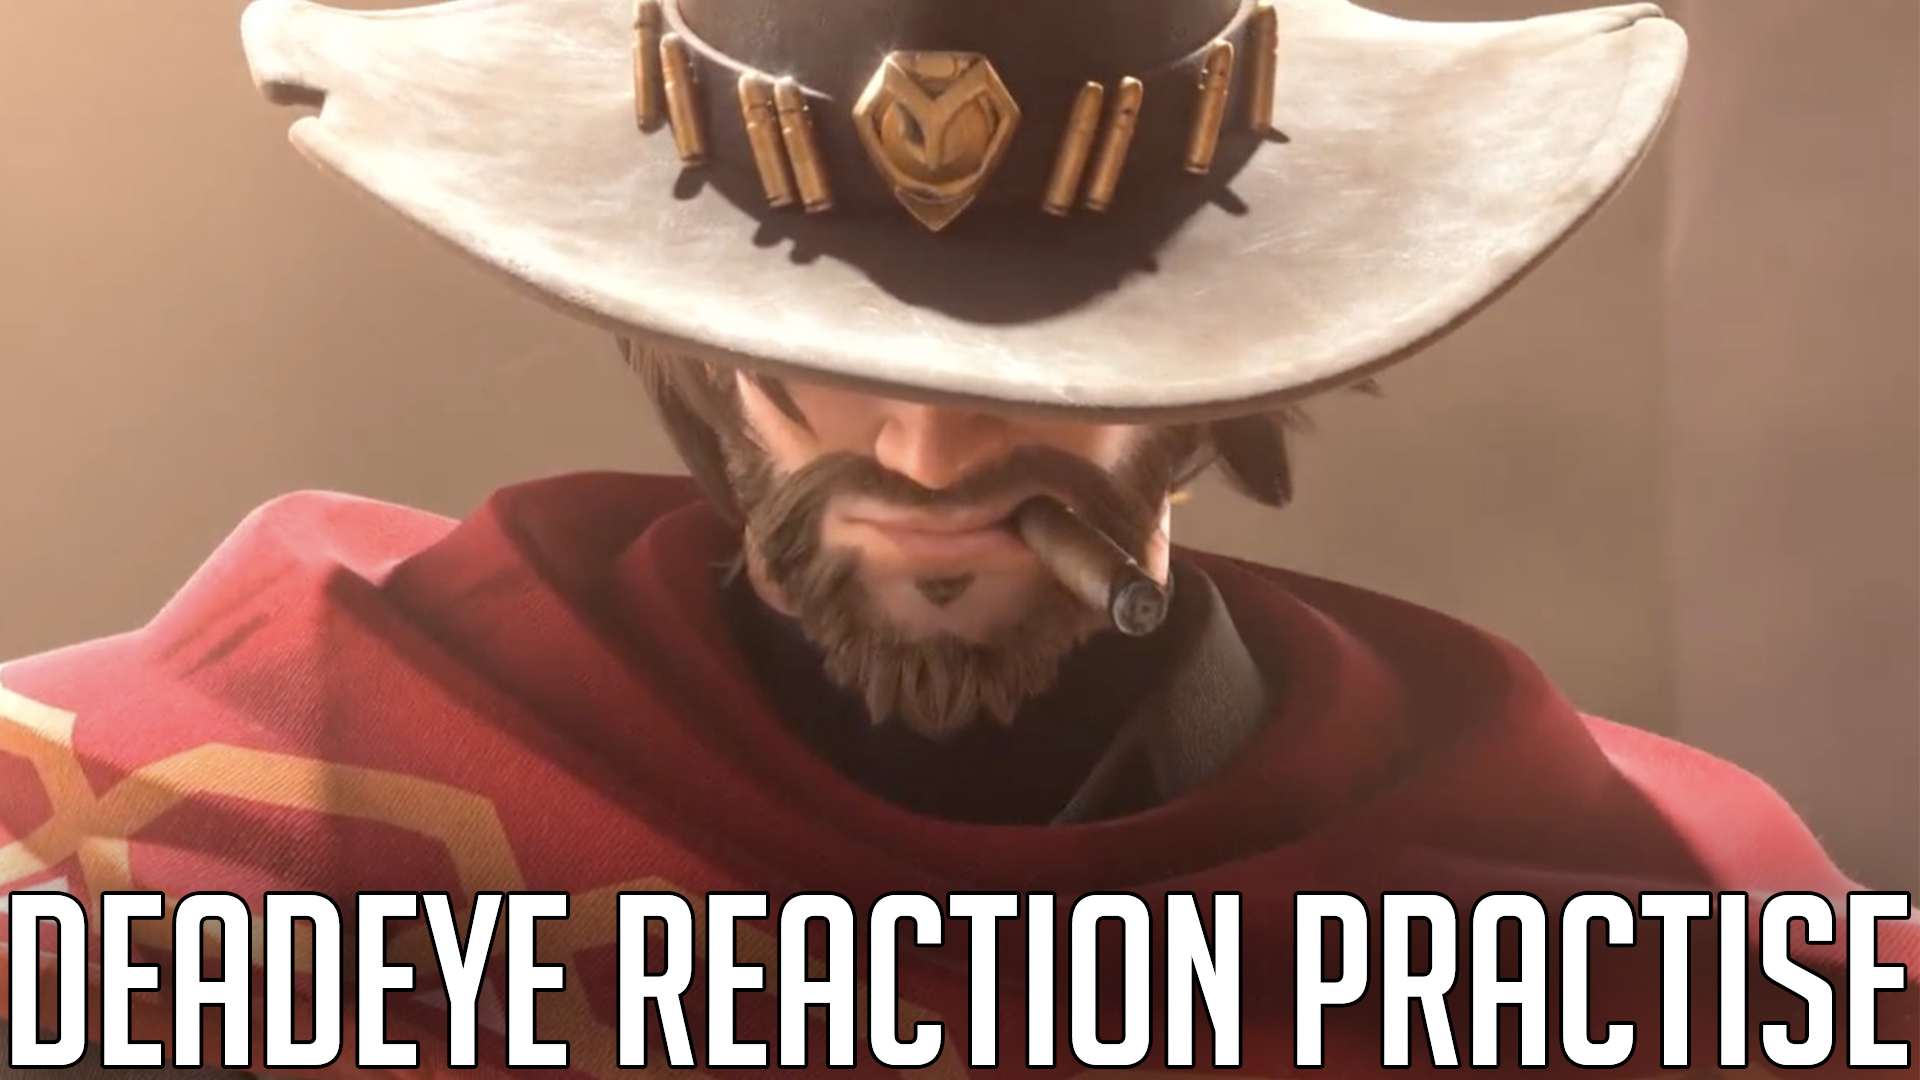 Thumbnail for Deadeye Reaction Practise